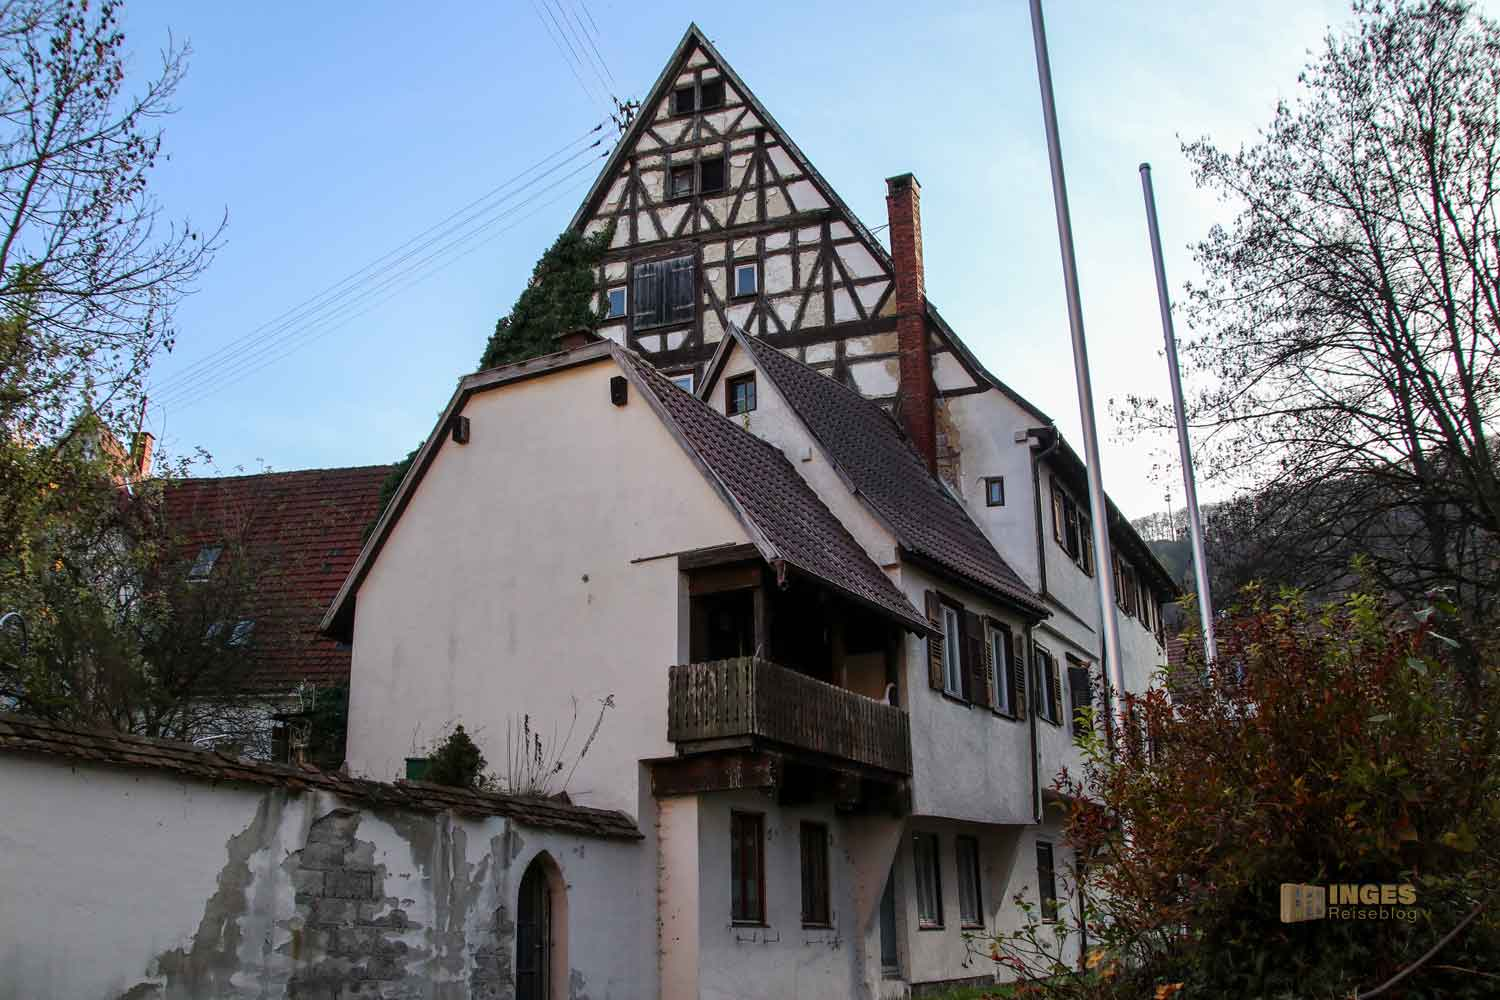 Sprandel'sches Haus in Bad Urach 0583